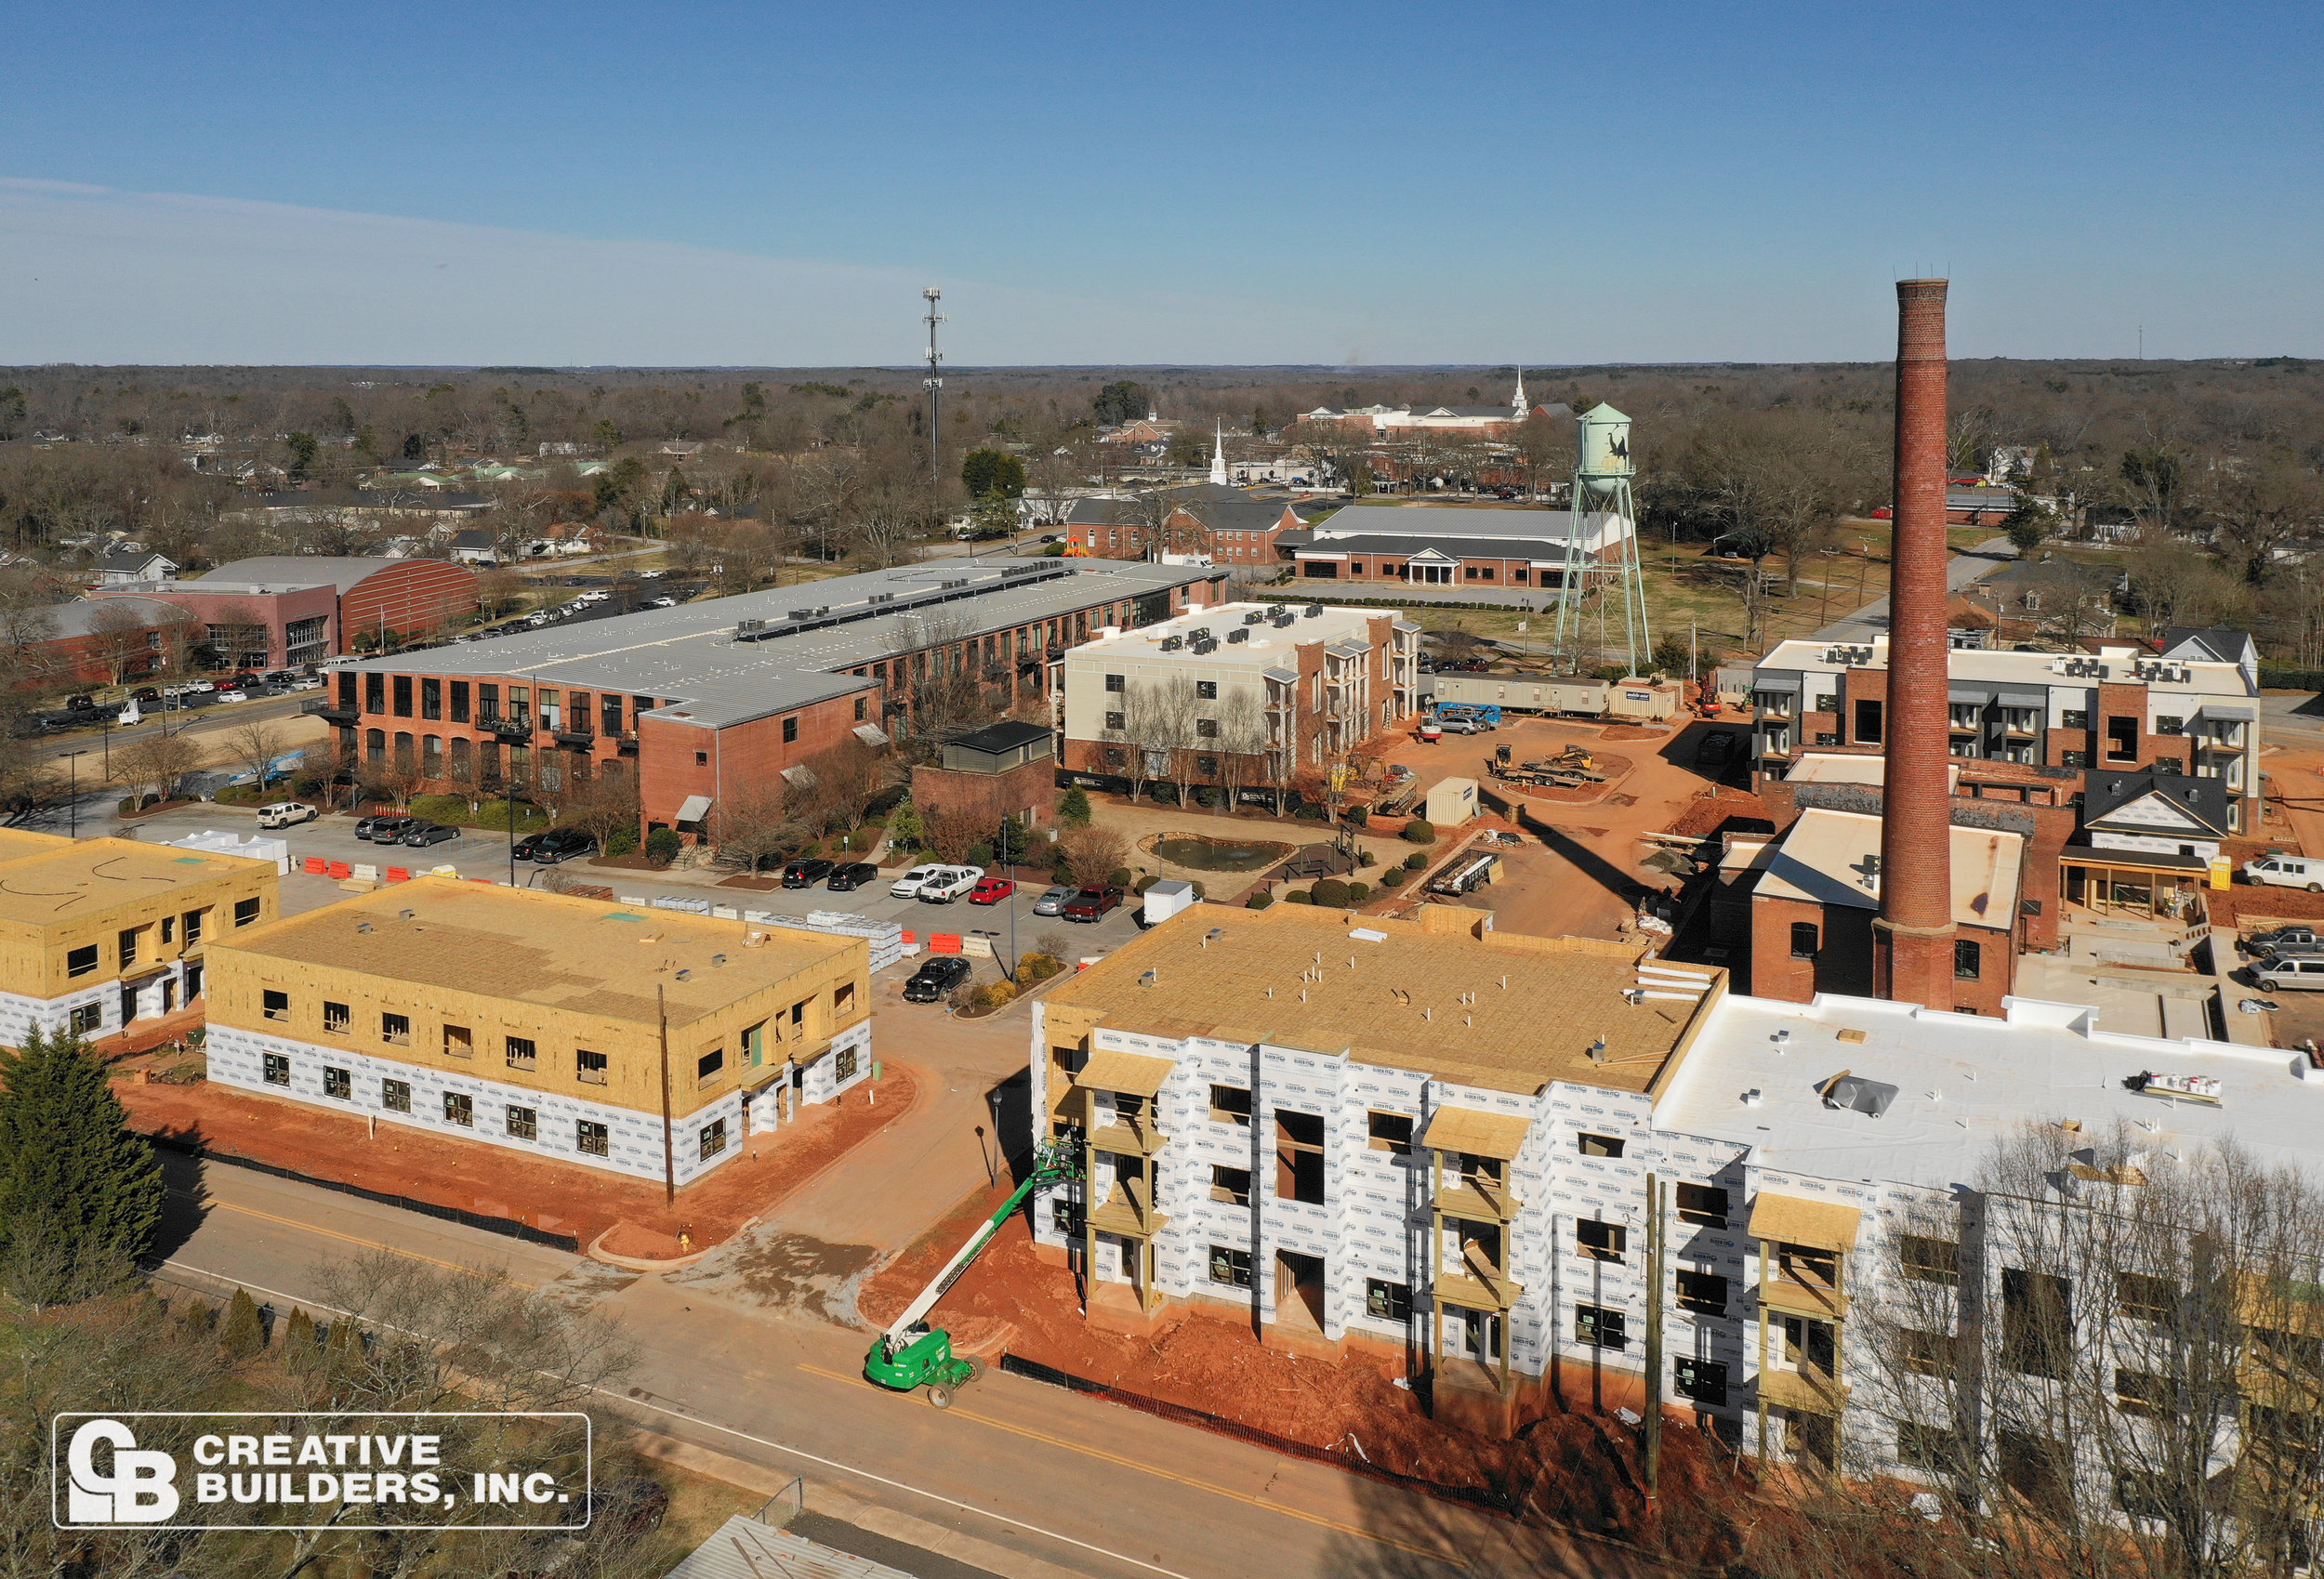 cotton_mill_commons_2019-01-31-4.jpg